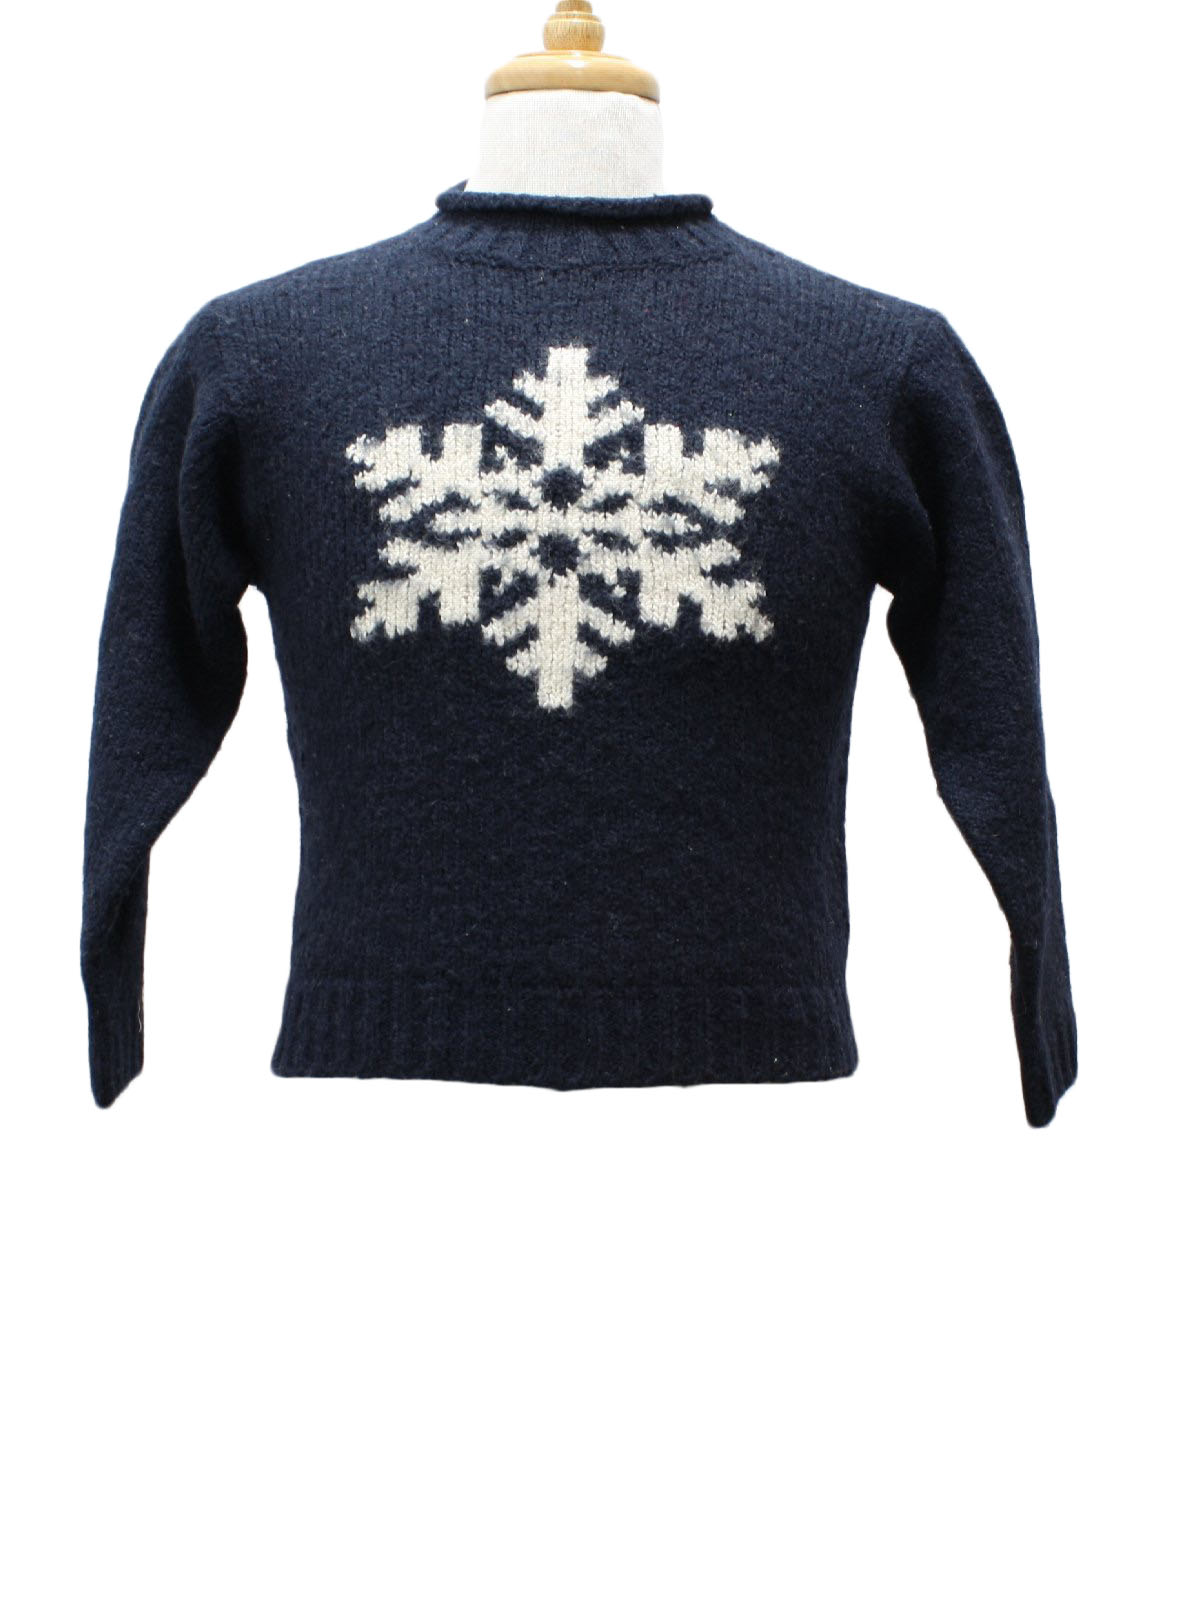 f6a02fb16 Childs Ugly Christmas Sweater  -GAP - Unisex Childs Royal Blue ...